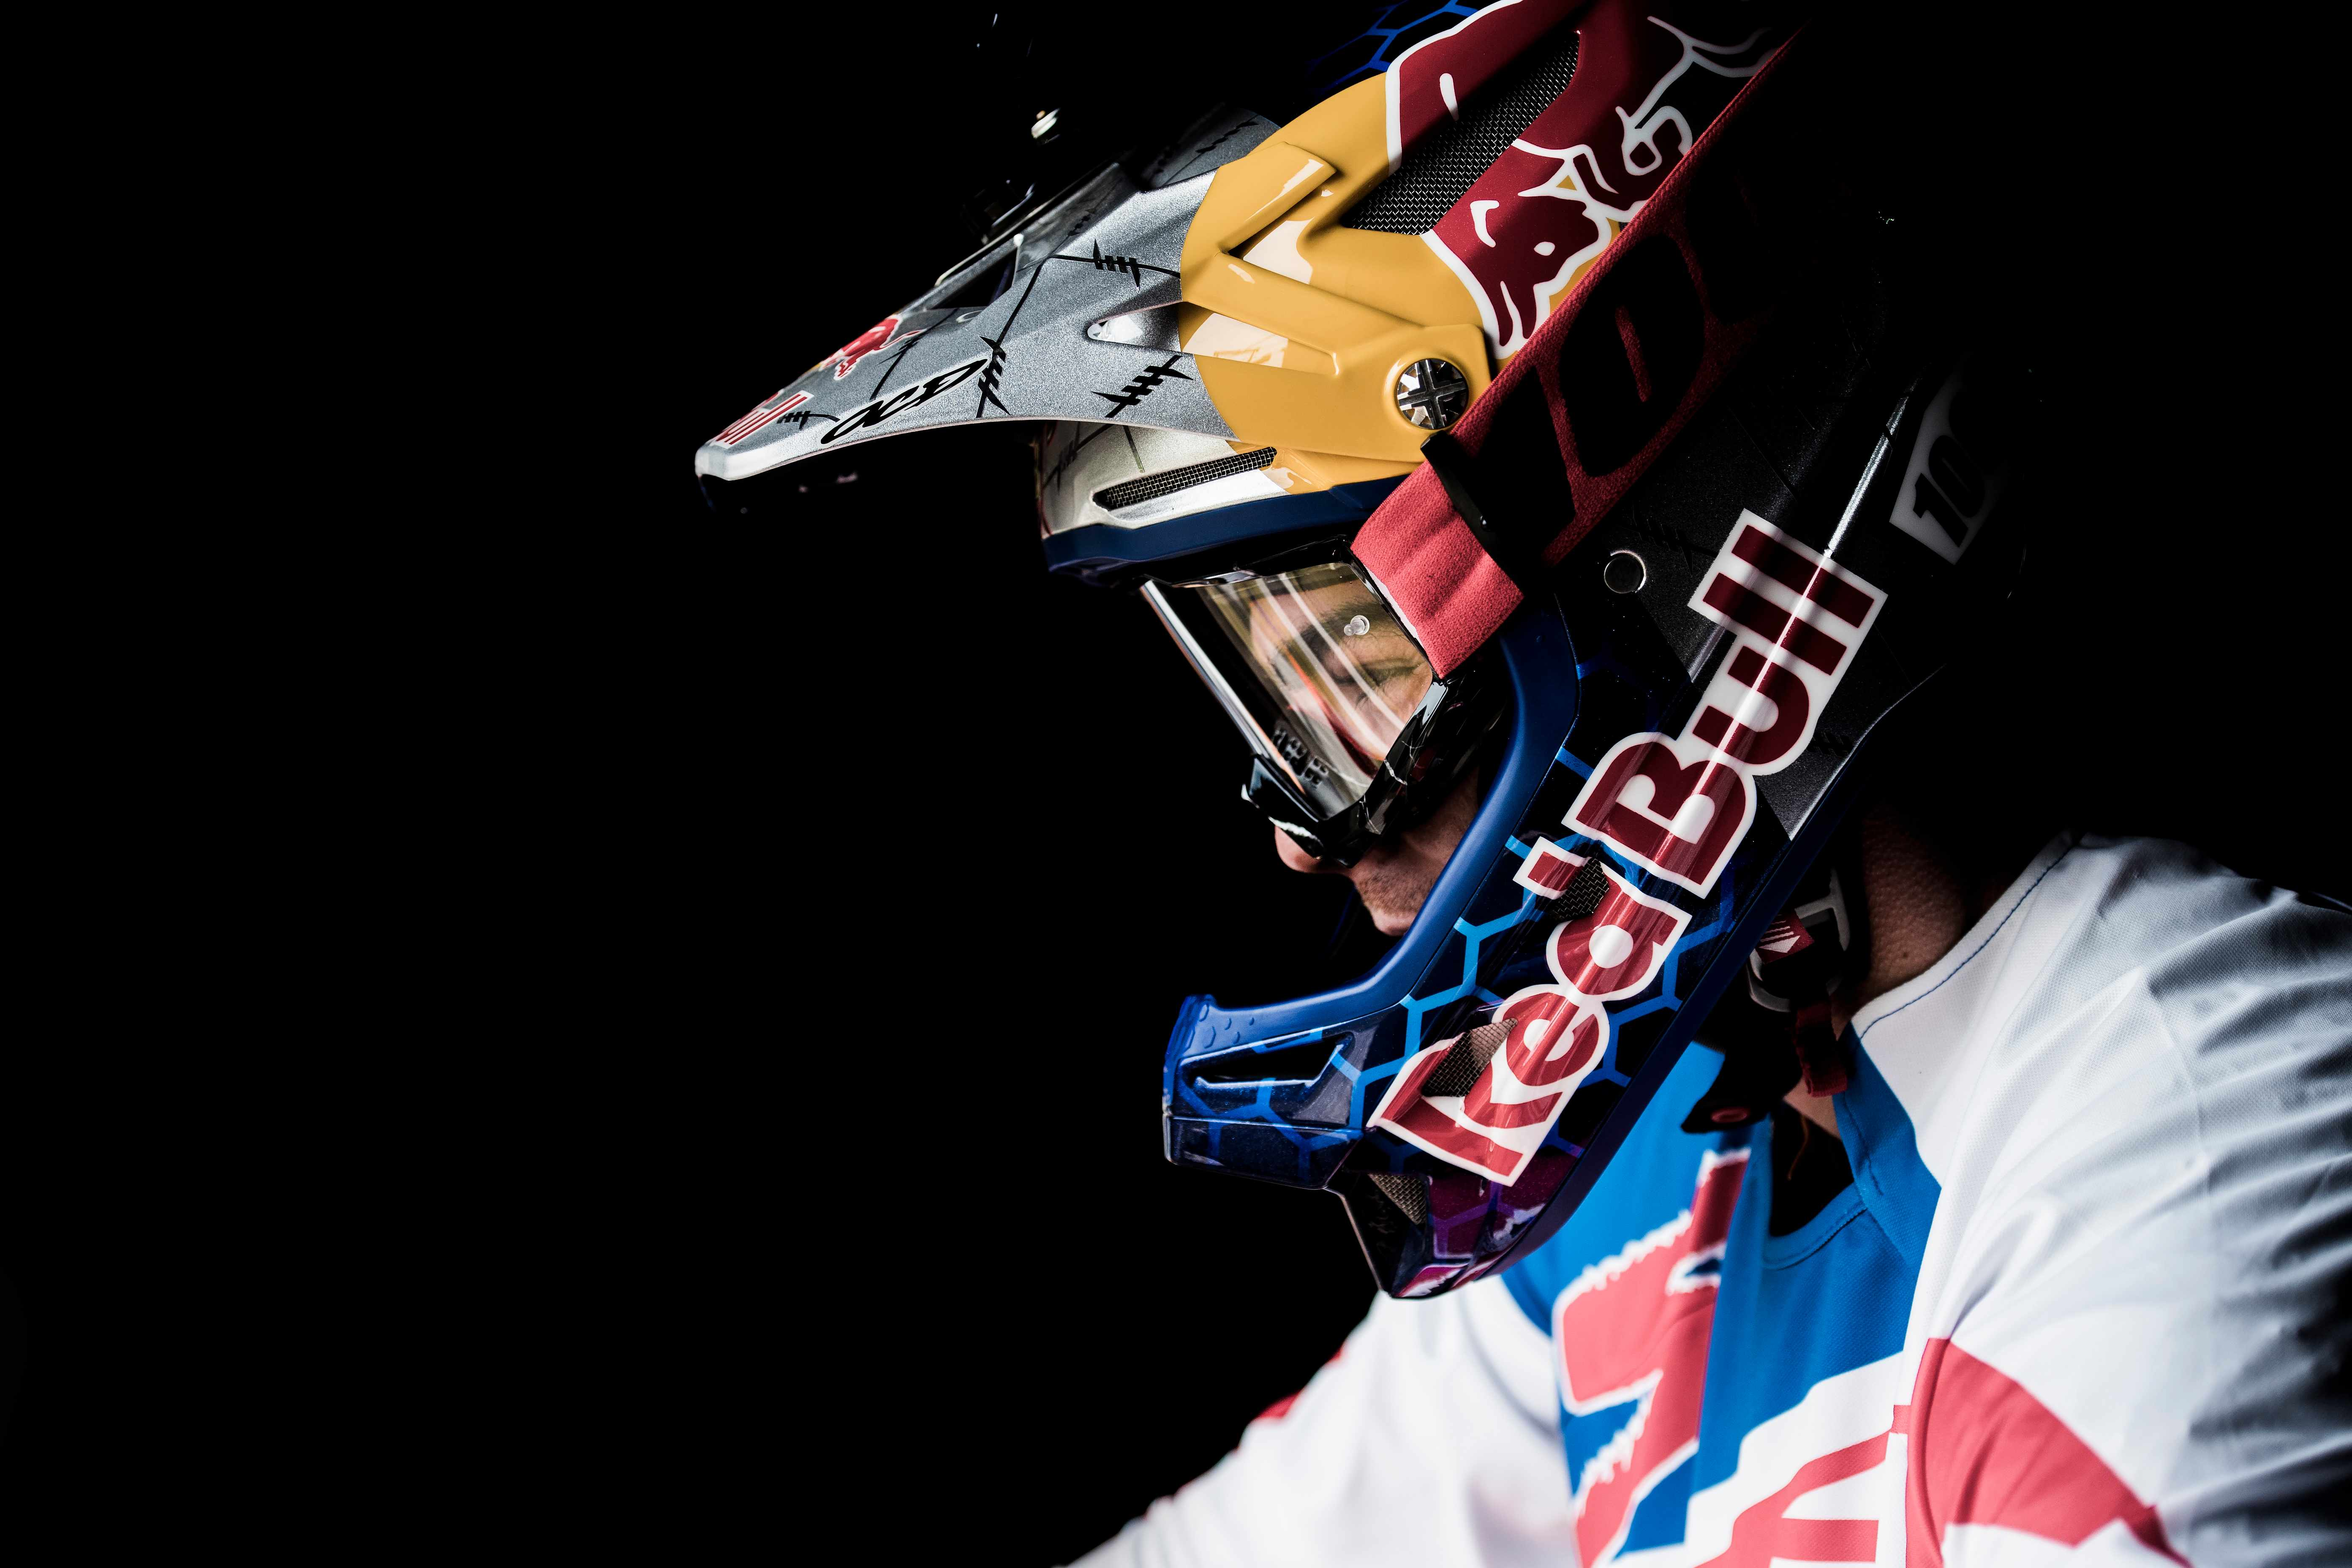 loic-bruni-cairns-world-champs-red-bull-content-pool